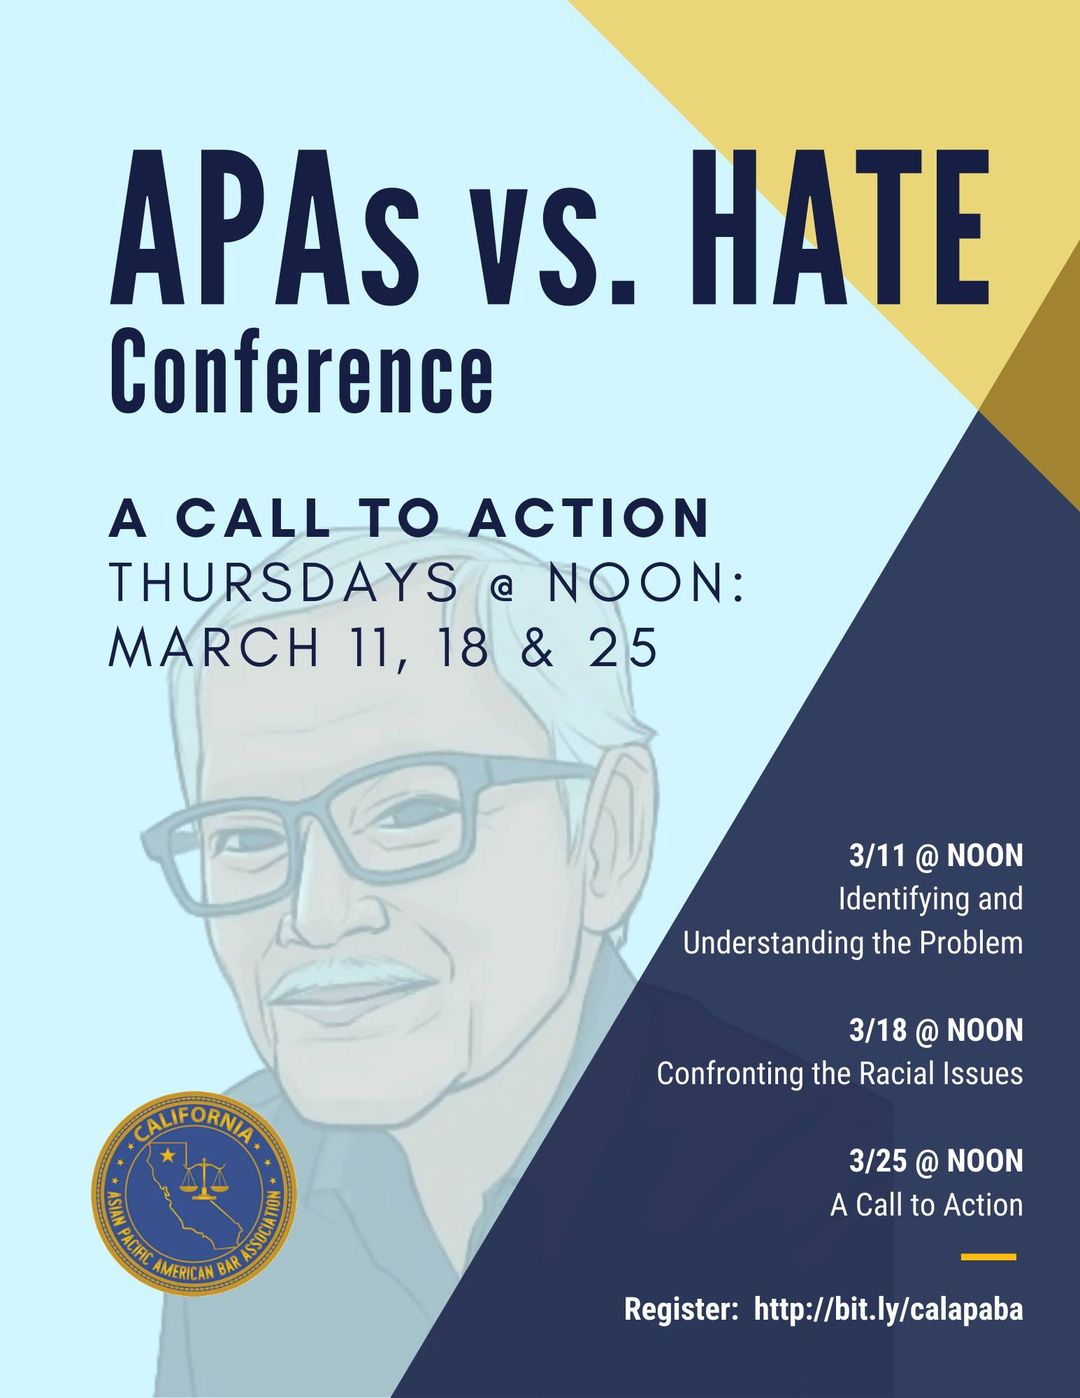 APAs vs. HATE